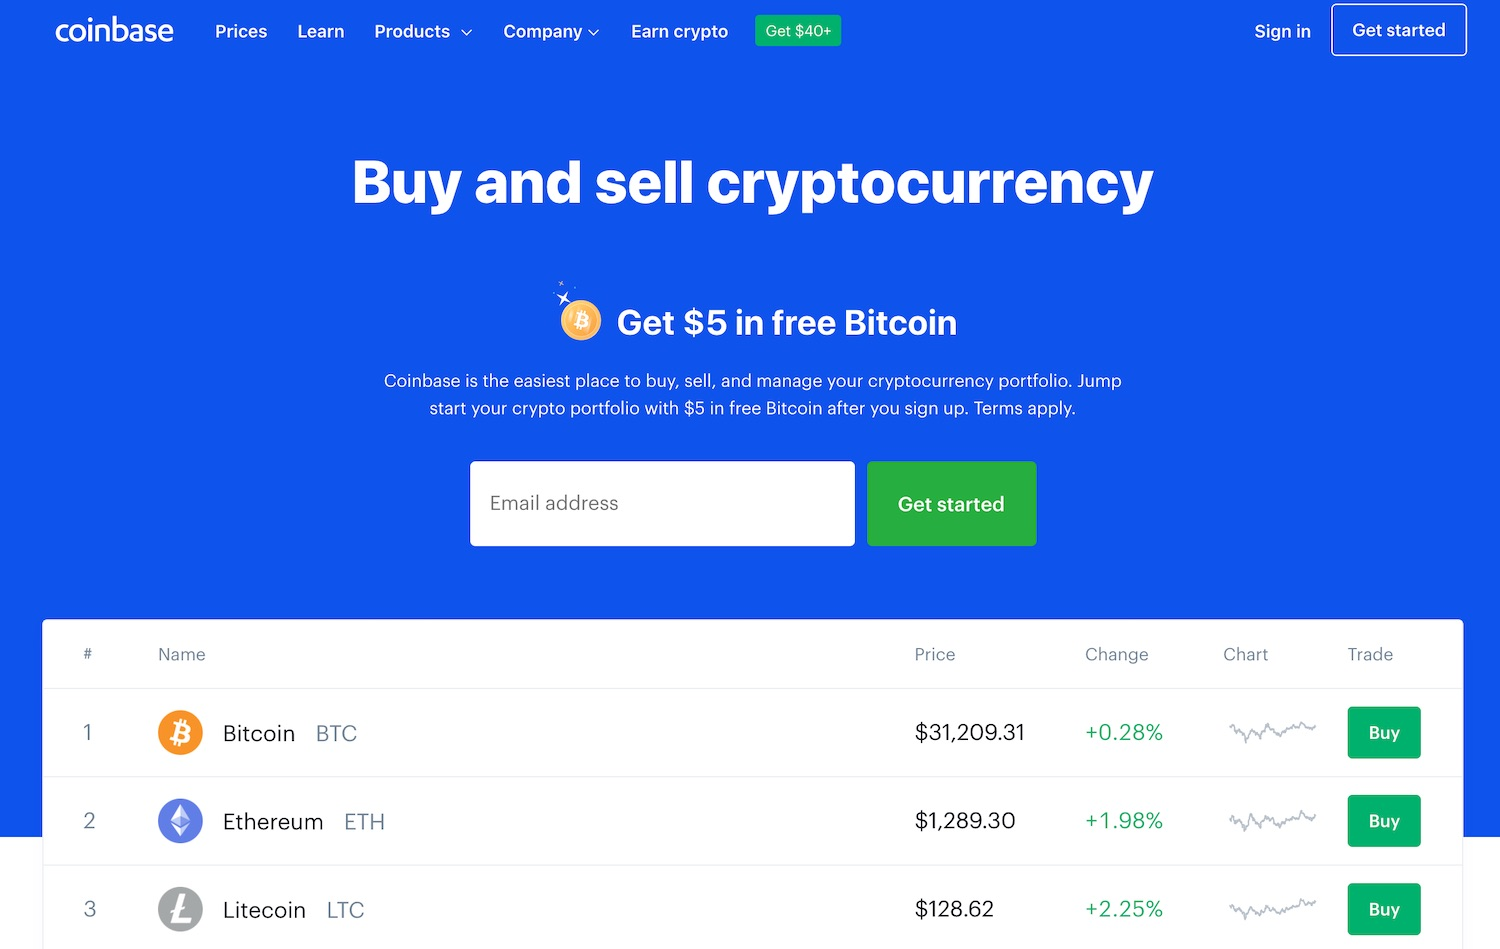 coinbase cryptocurrency exchange review